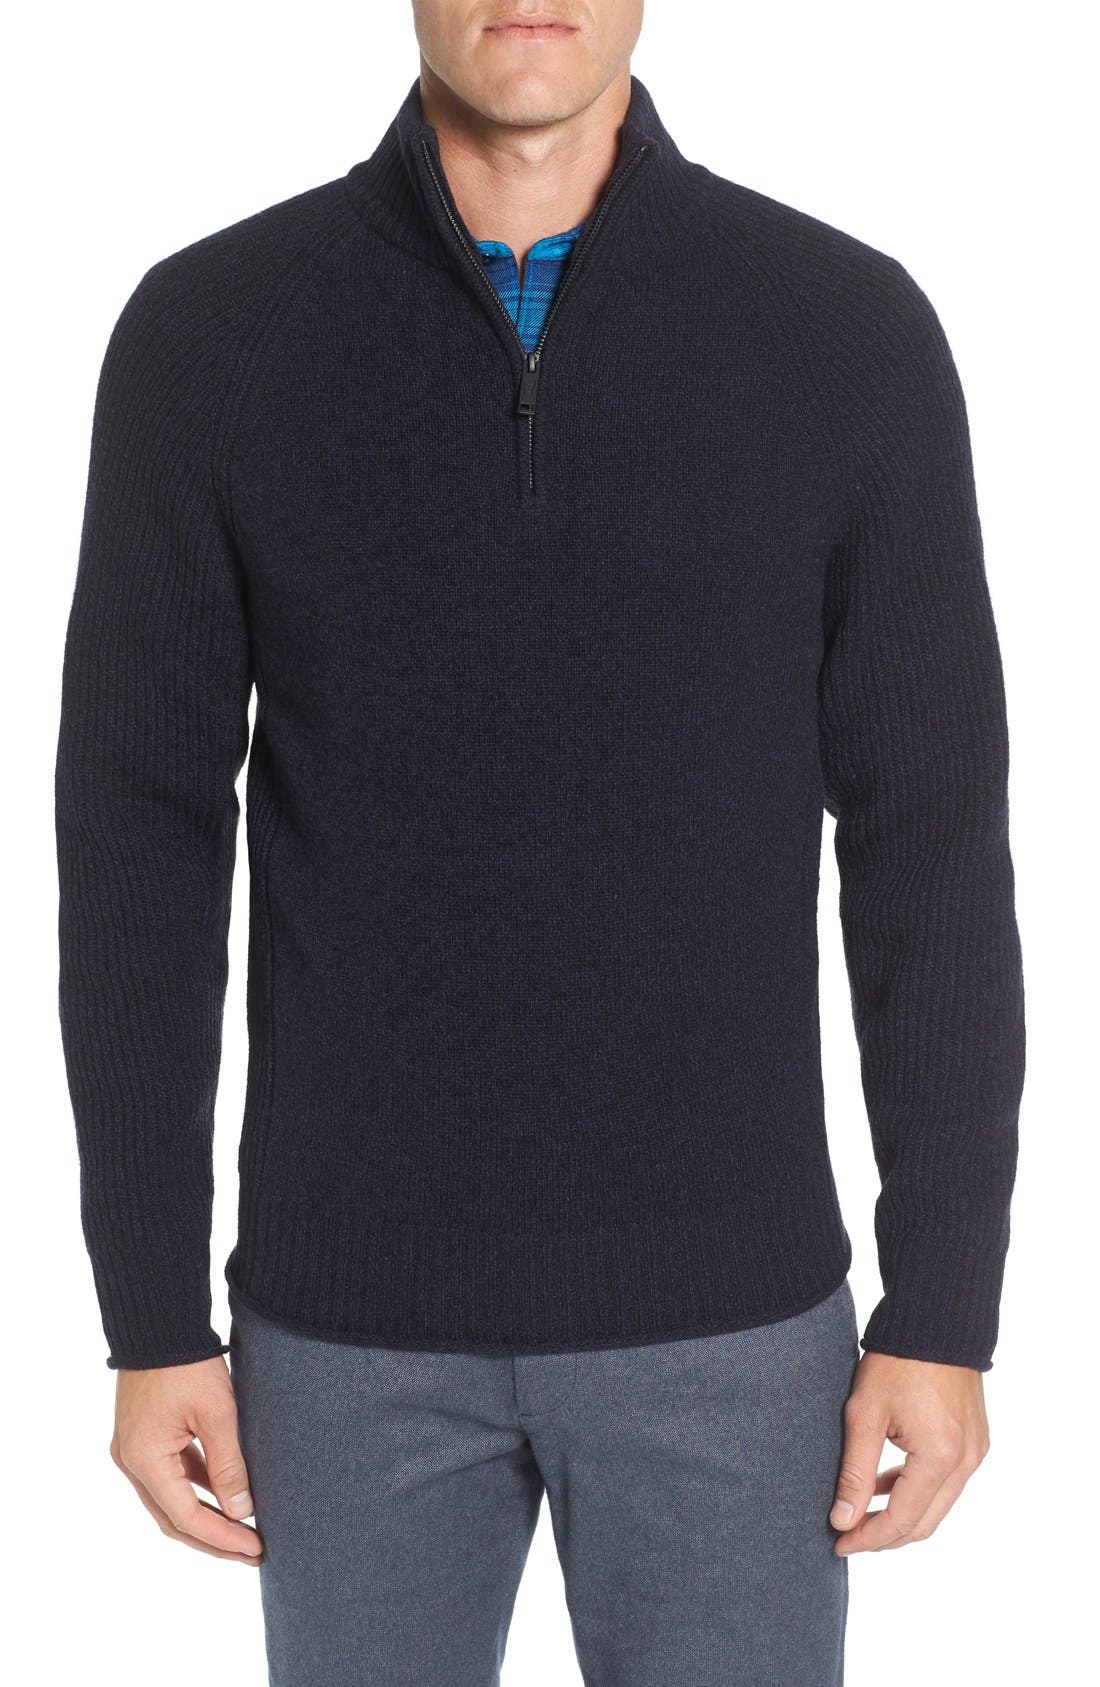 Stredwick Lambswool Sweater,                             Main thumbnail 5, color,